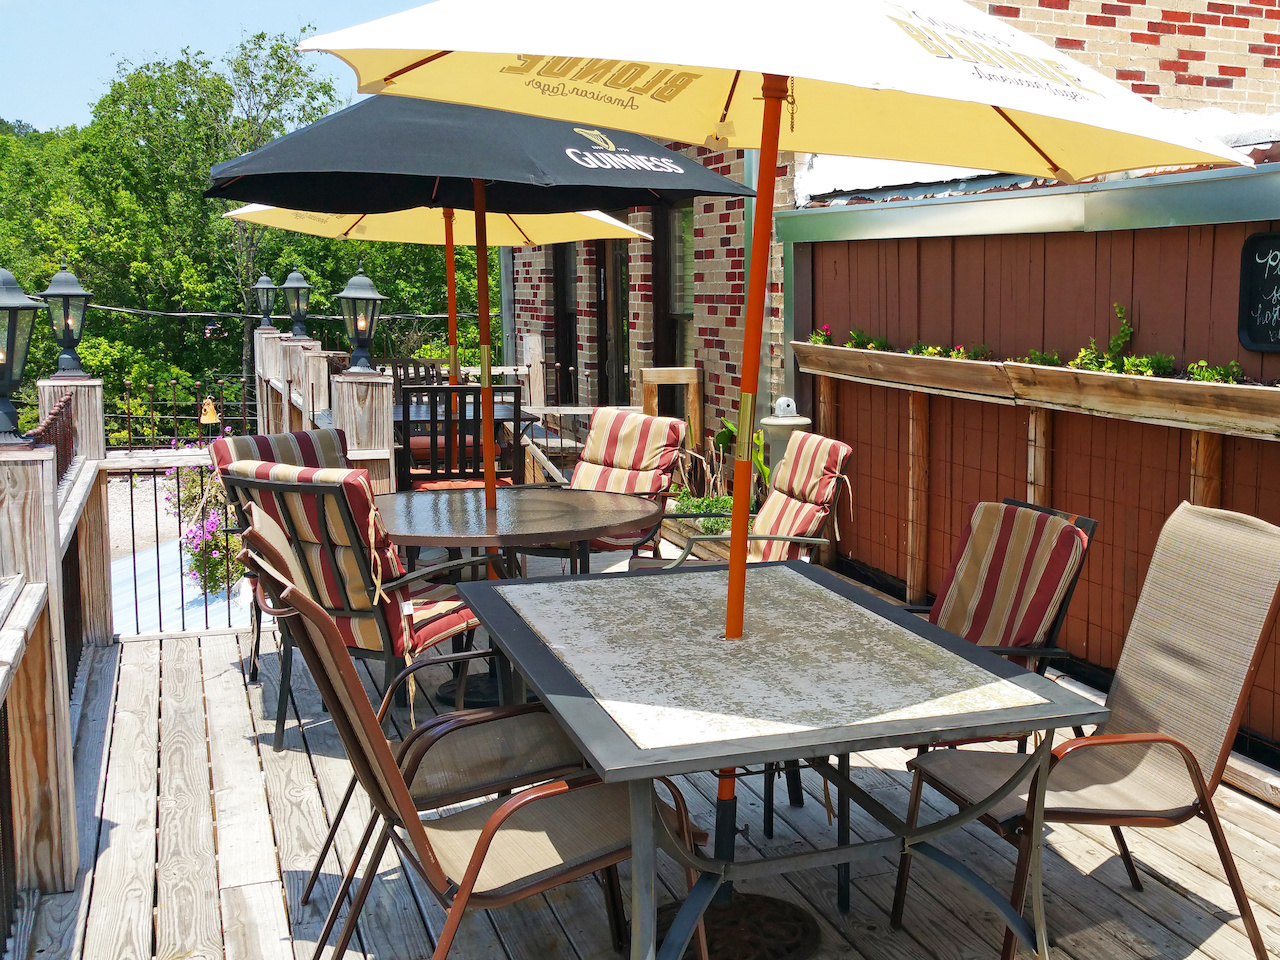 Soak in the sun as you dine at The Coal Yard.